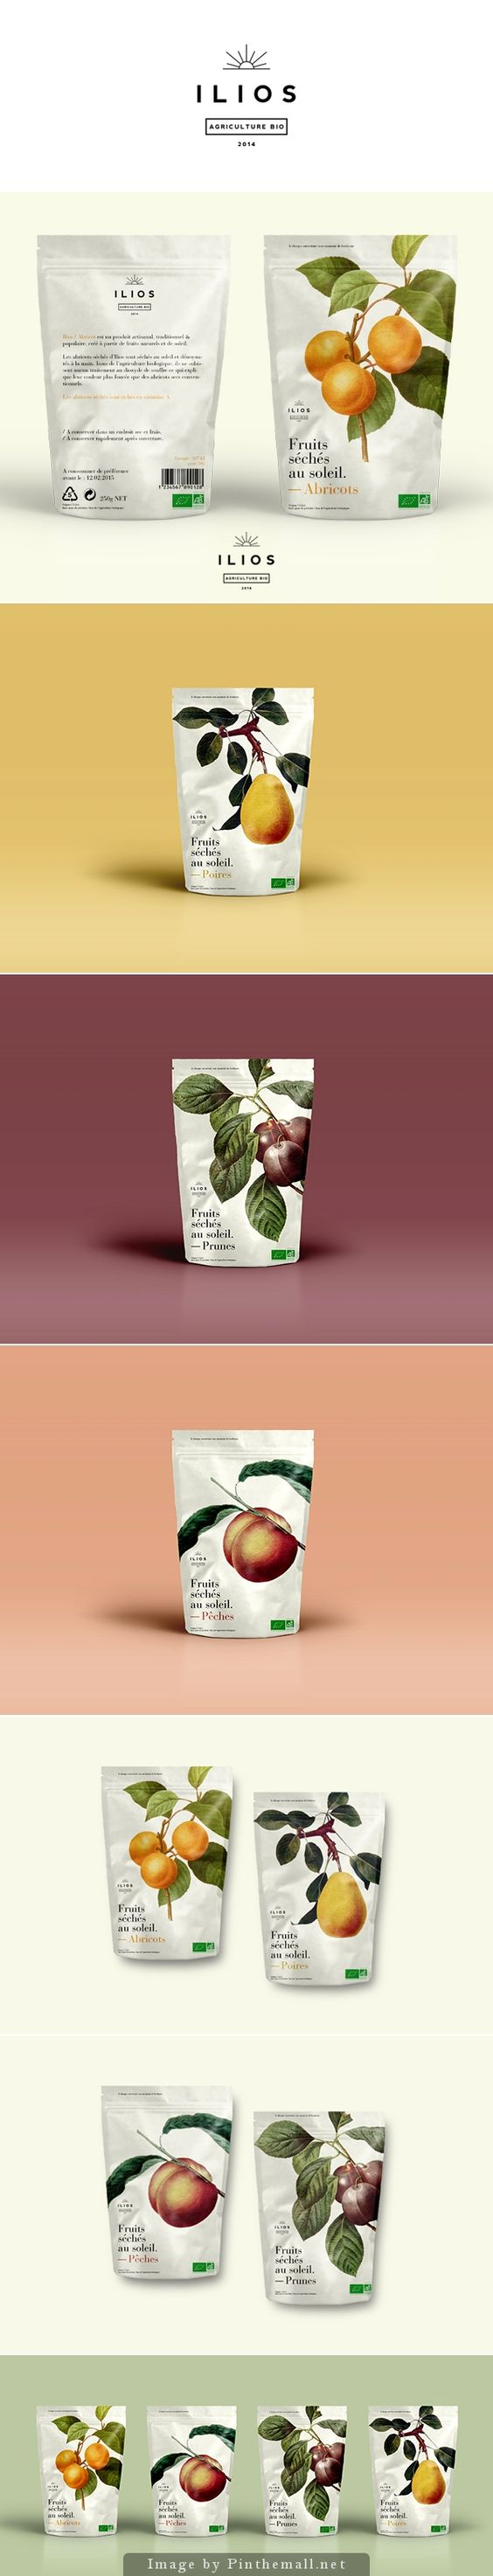 Ilios dried fruits by Dimitris Kostinis #packaging #design: